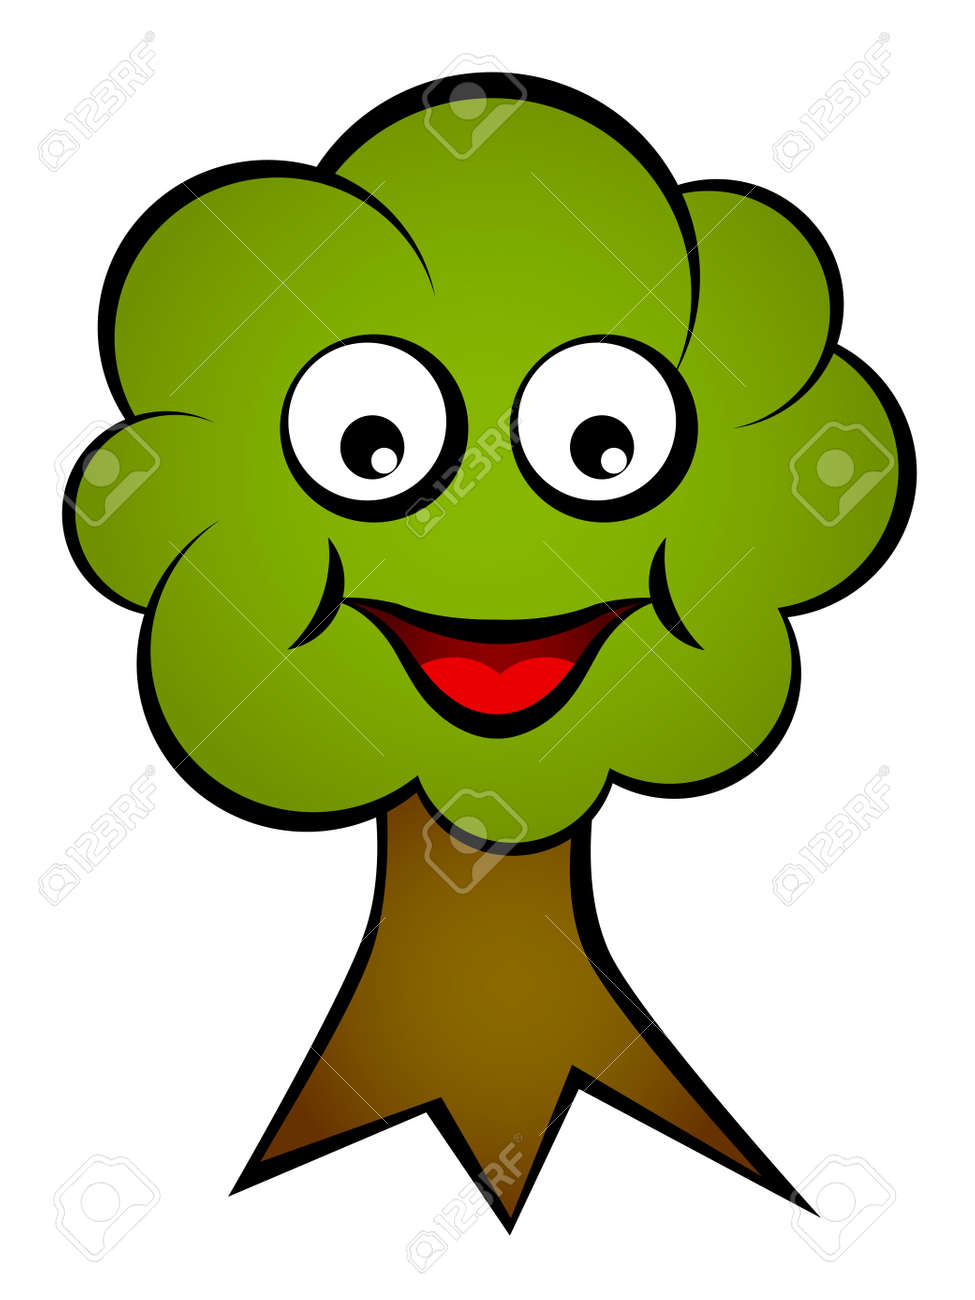 Vector Cartoon Smiling Face Tree Royalty Free Cliparts Vectors And Stock Illustration Image 11563934 Find cute cartoon pictures from our collection of adorable images. vector cartoon smiling face tree